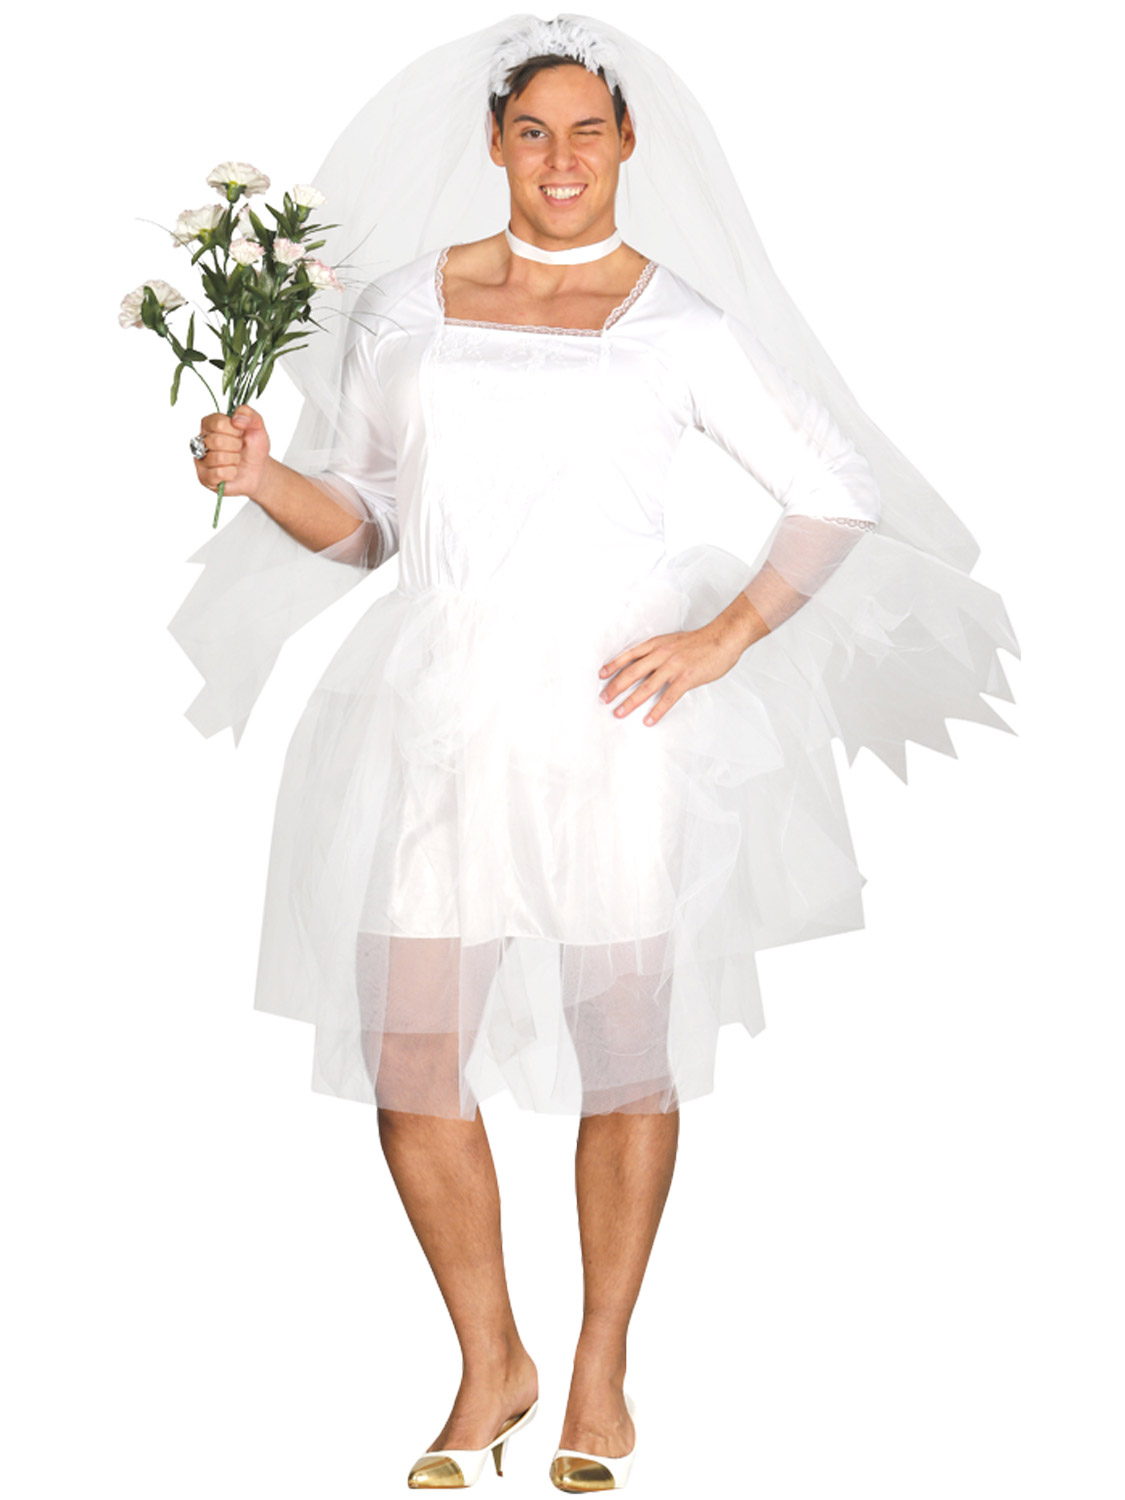 Mens-Bride-Costume-Stag-Do-Fancy-Dress-Male-White-Wedding-Dress-Costume-Funny thumbnail 3